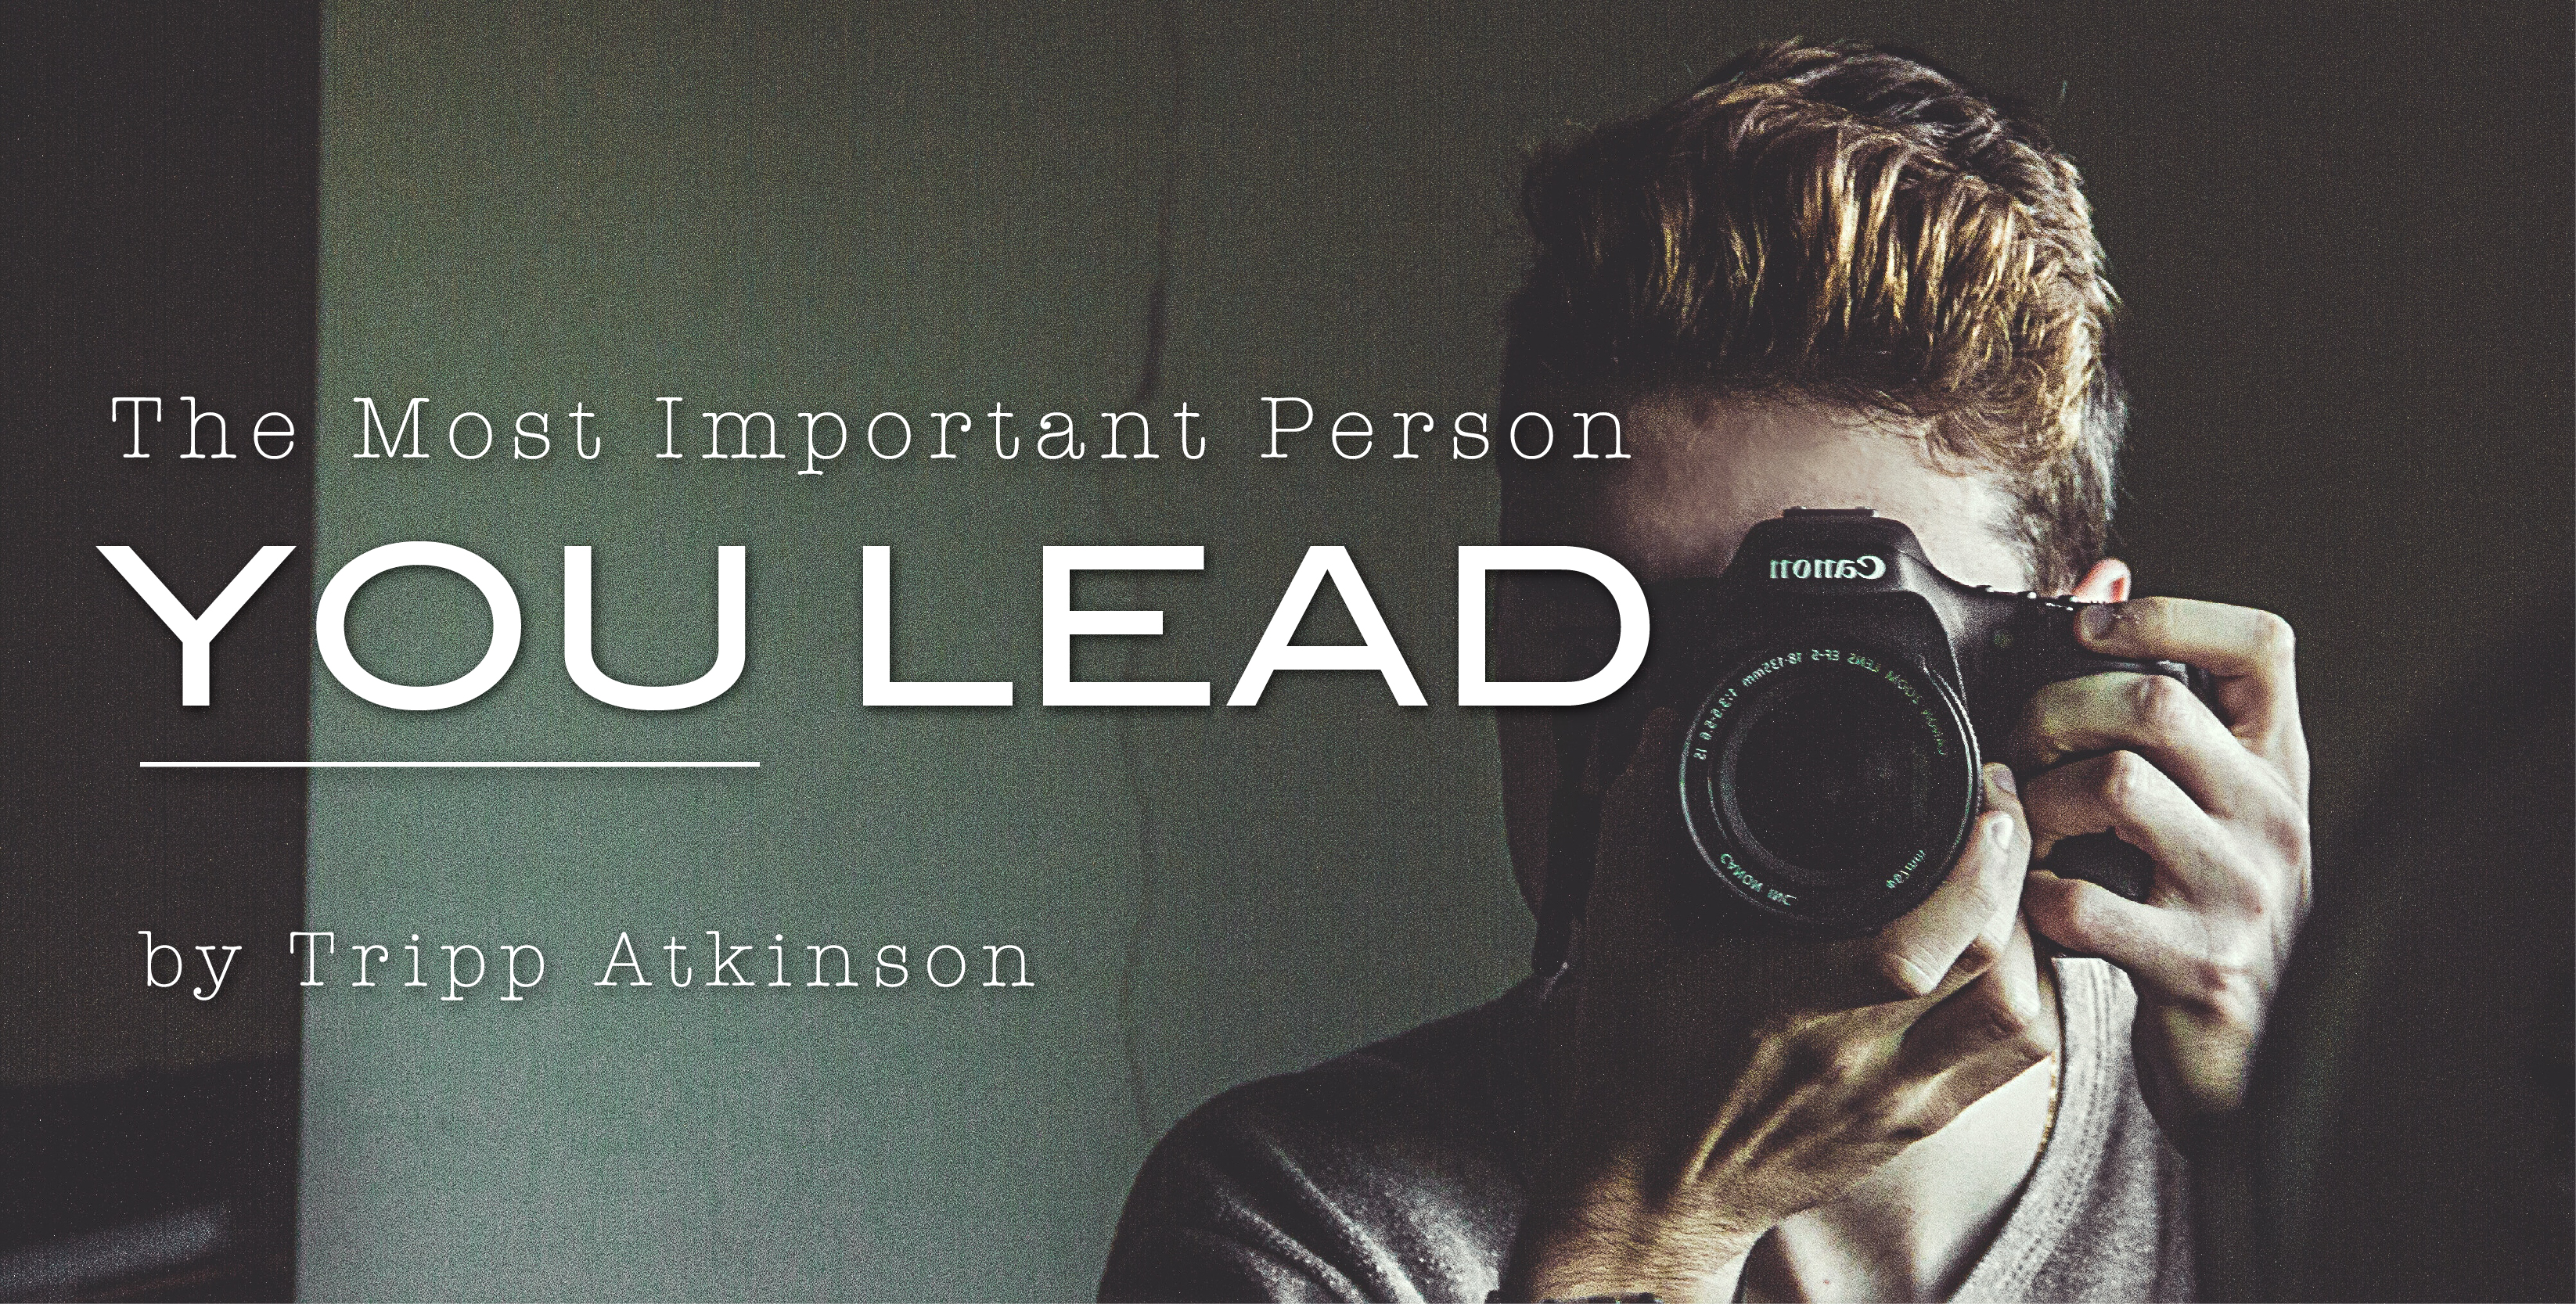 The Most Important Person You Lead blog post by Tripp Atkinson